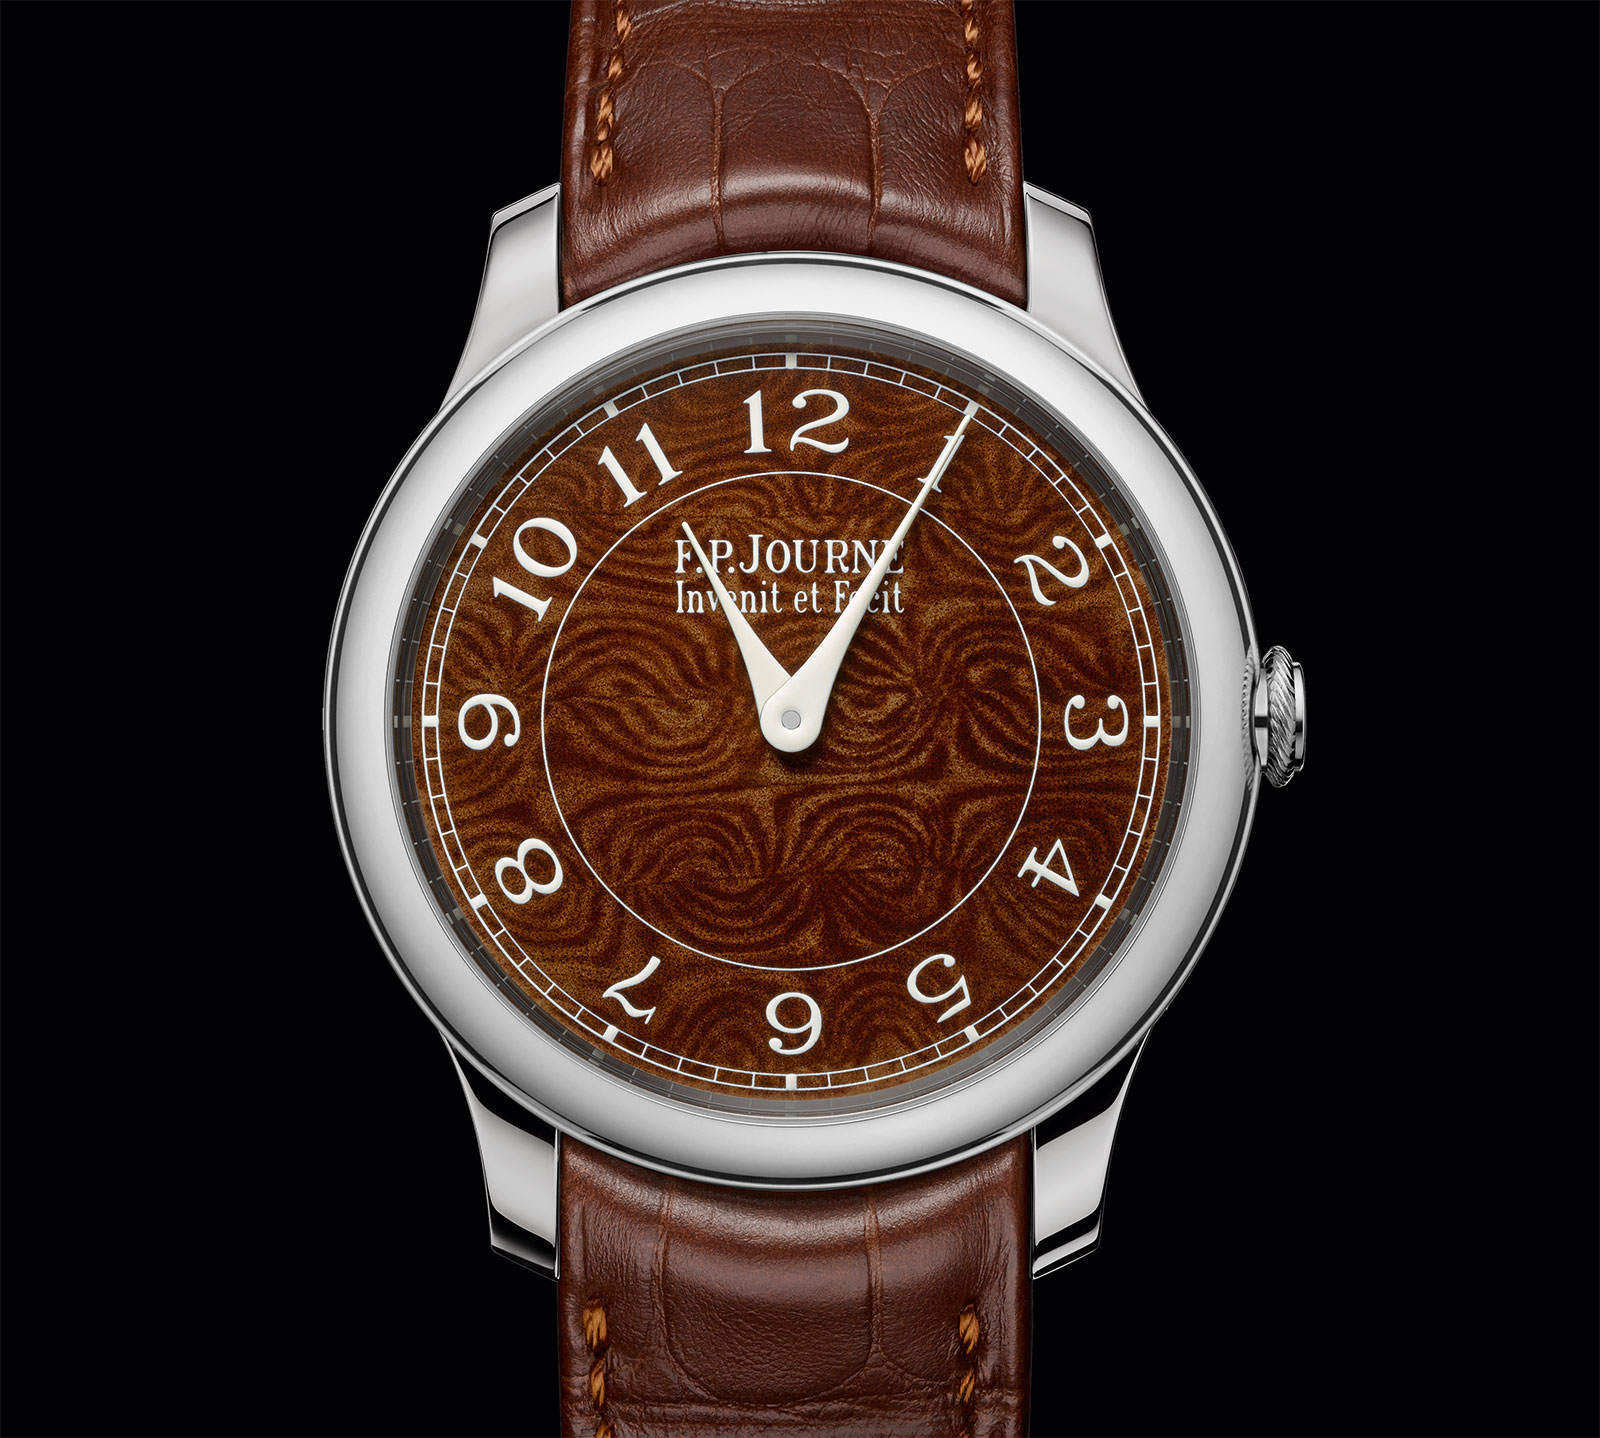 FP Journe Holland and Holland 2